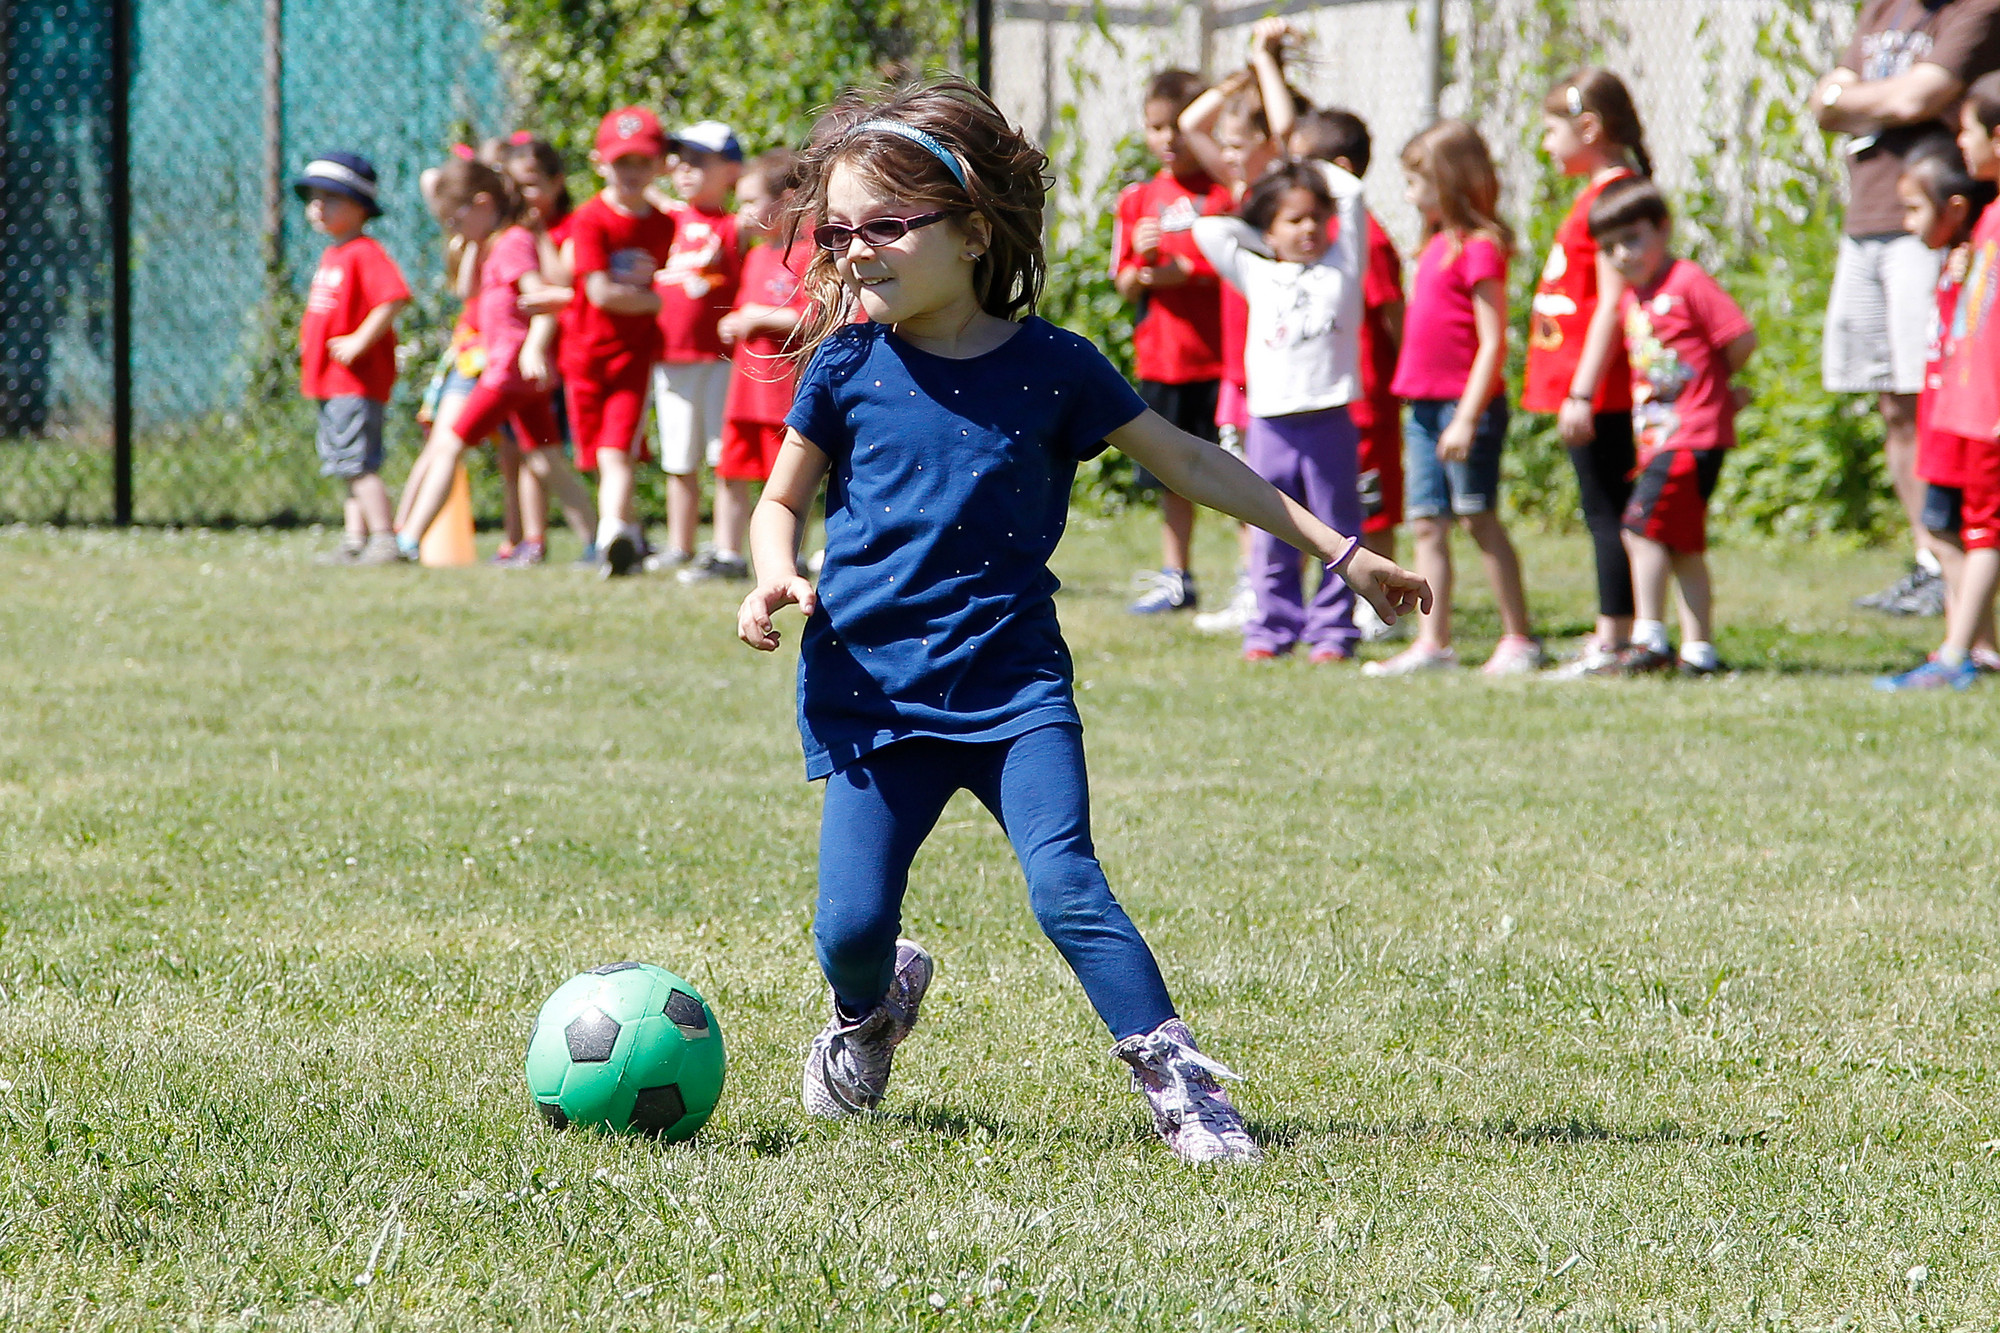 Kindergartner Cadence Anofossi kicked the soccer ball for the blue team as she made her way to the finish line.